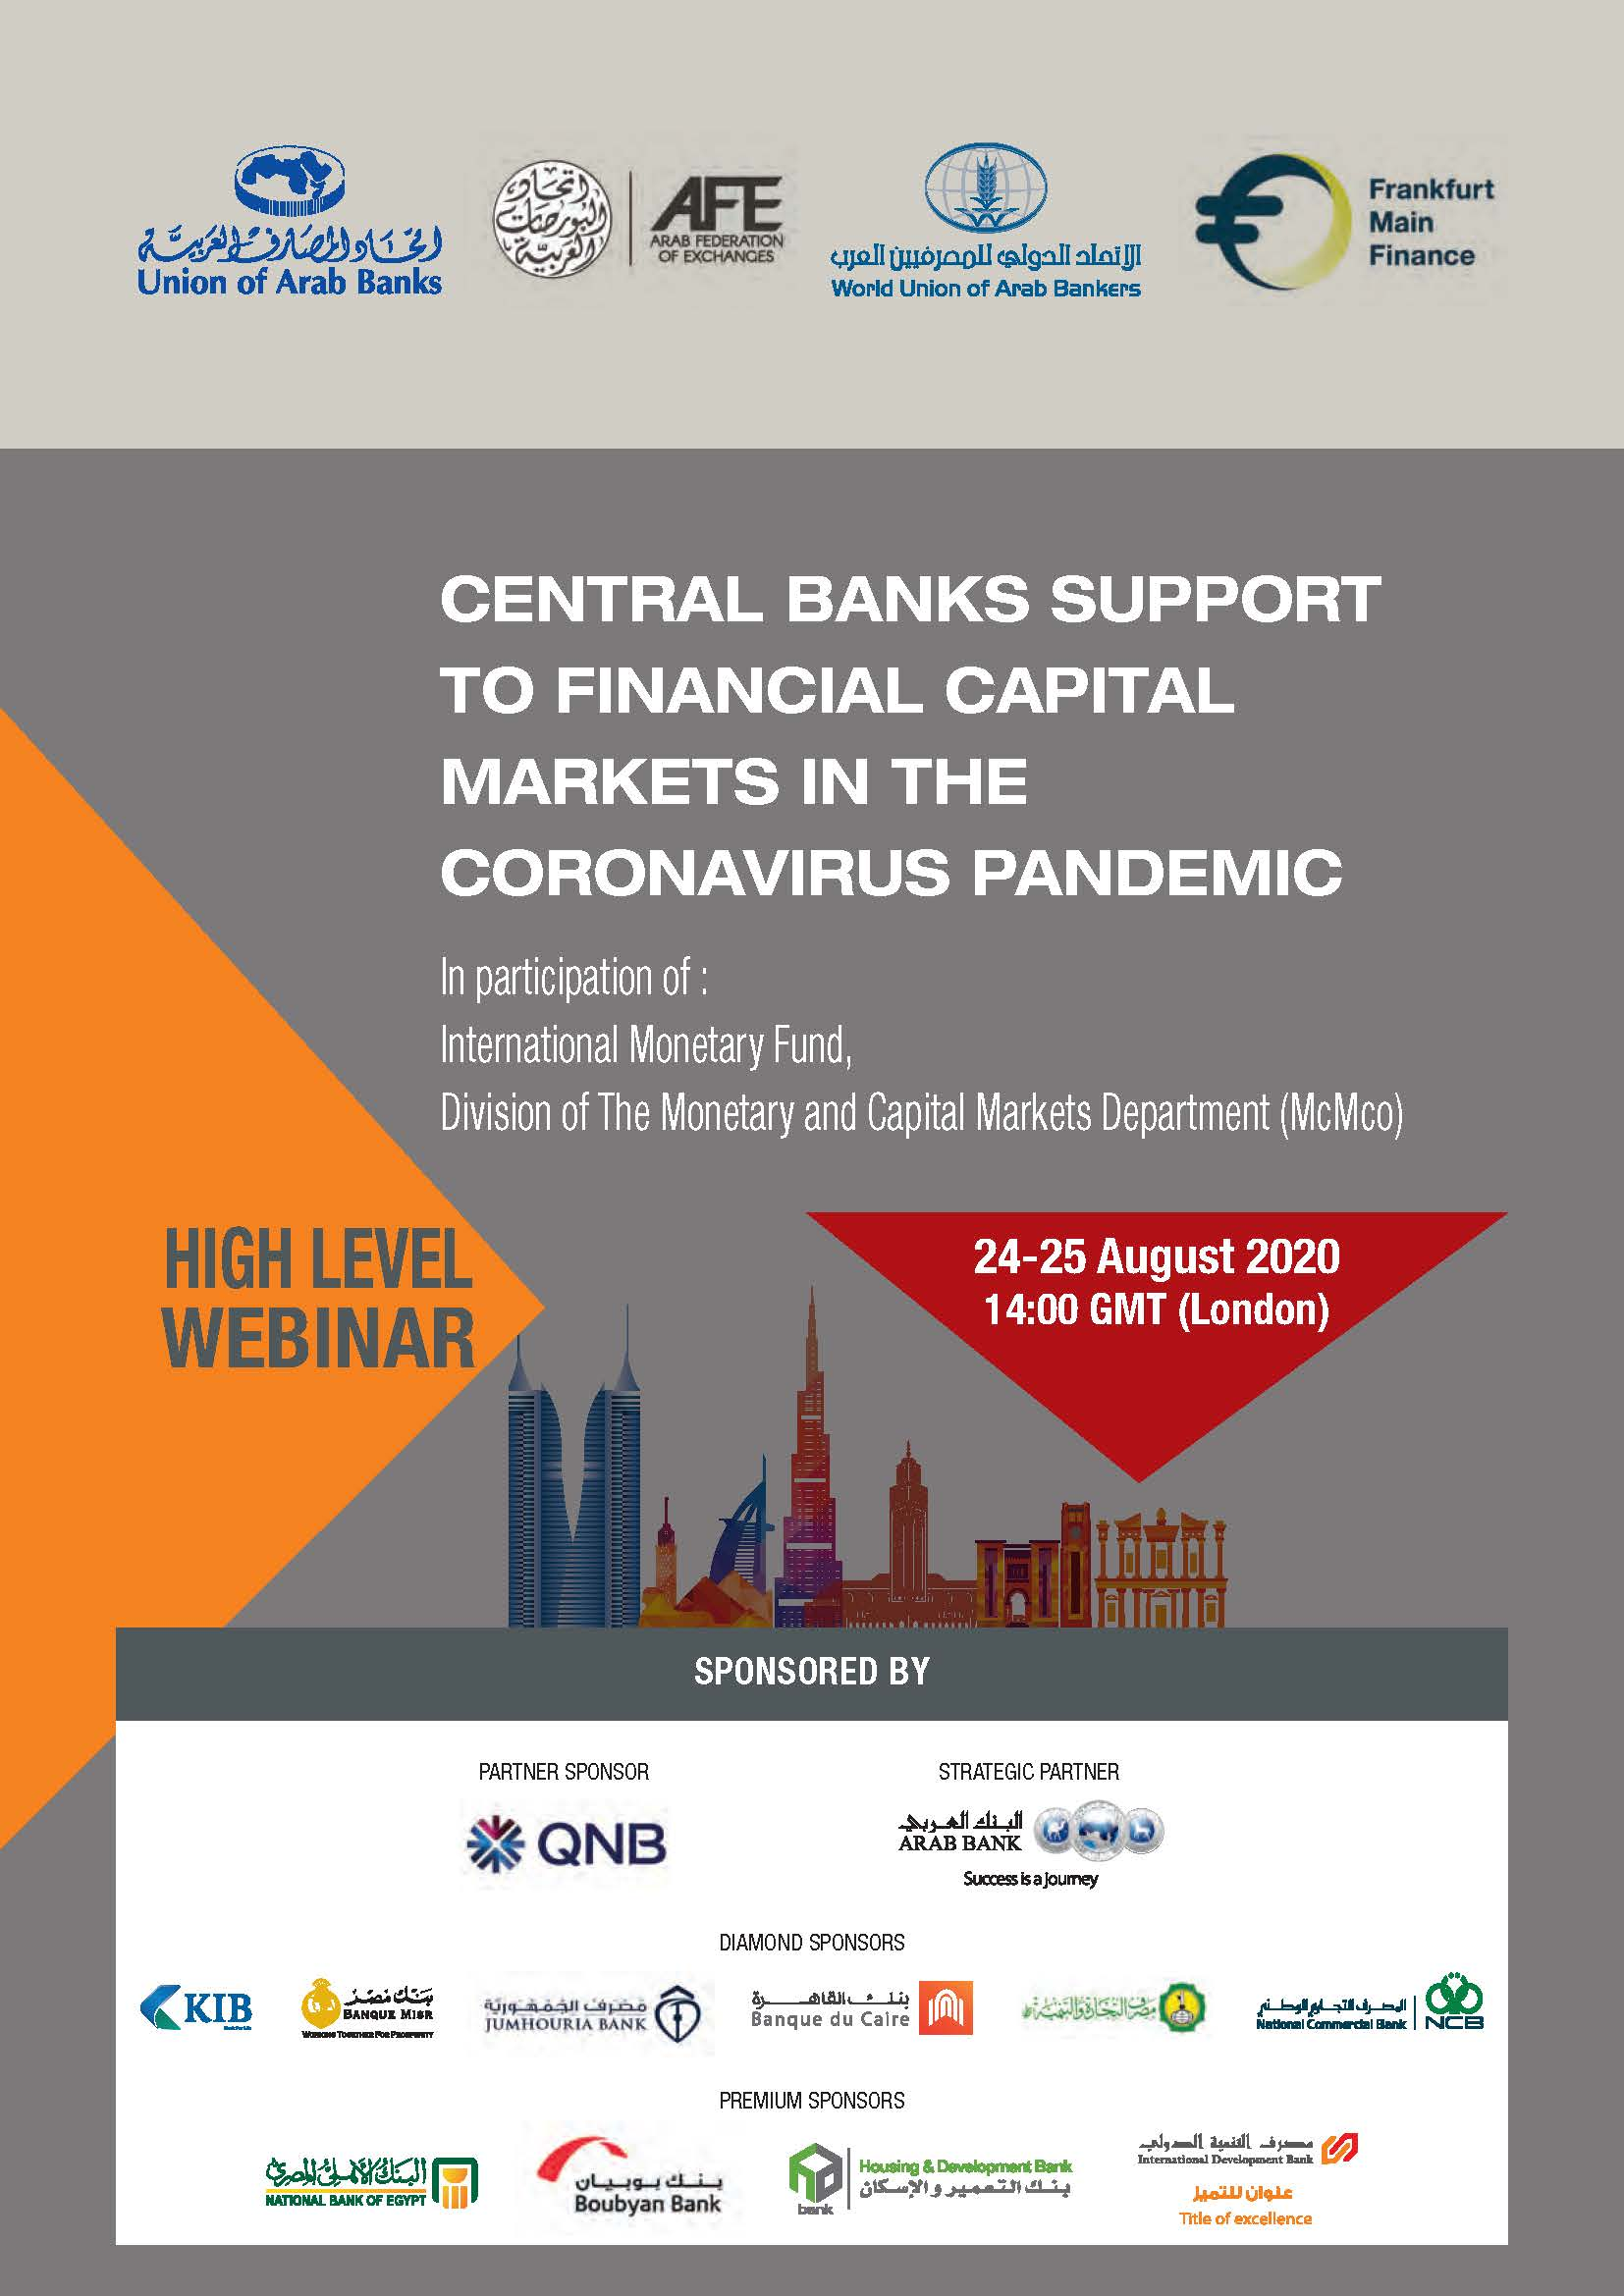 Central Banks Support to Financial Capital Markets in the Coronavirus Pandemic